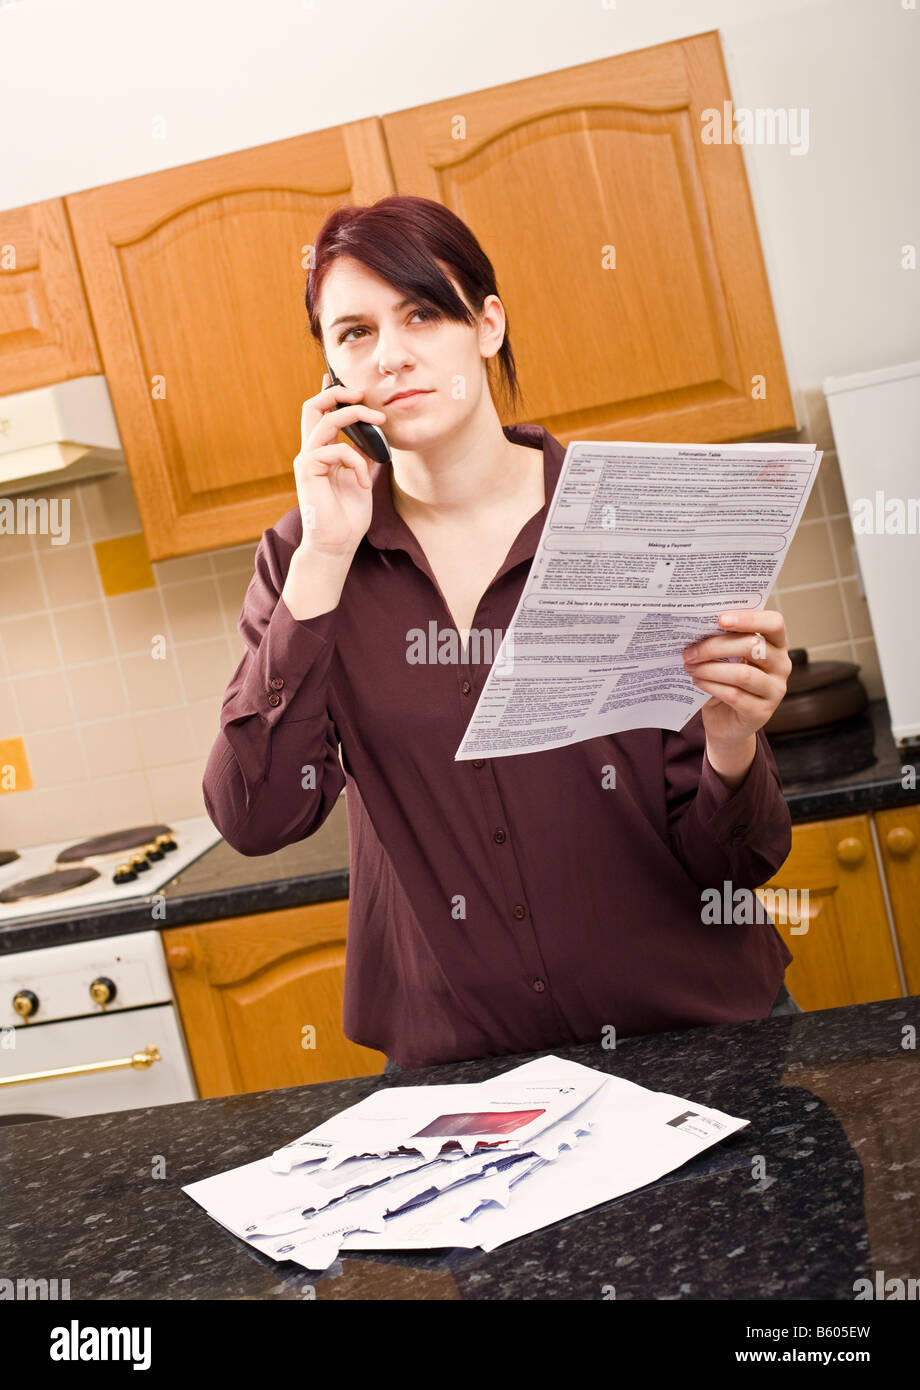 Young woman querying a large bill using her mobile phone listening and looking sceptical, serious expression - Stock Image